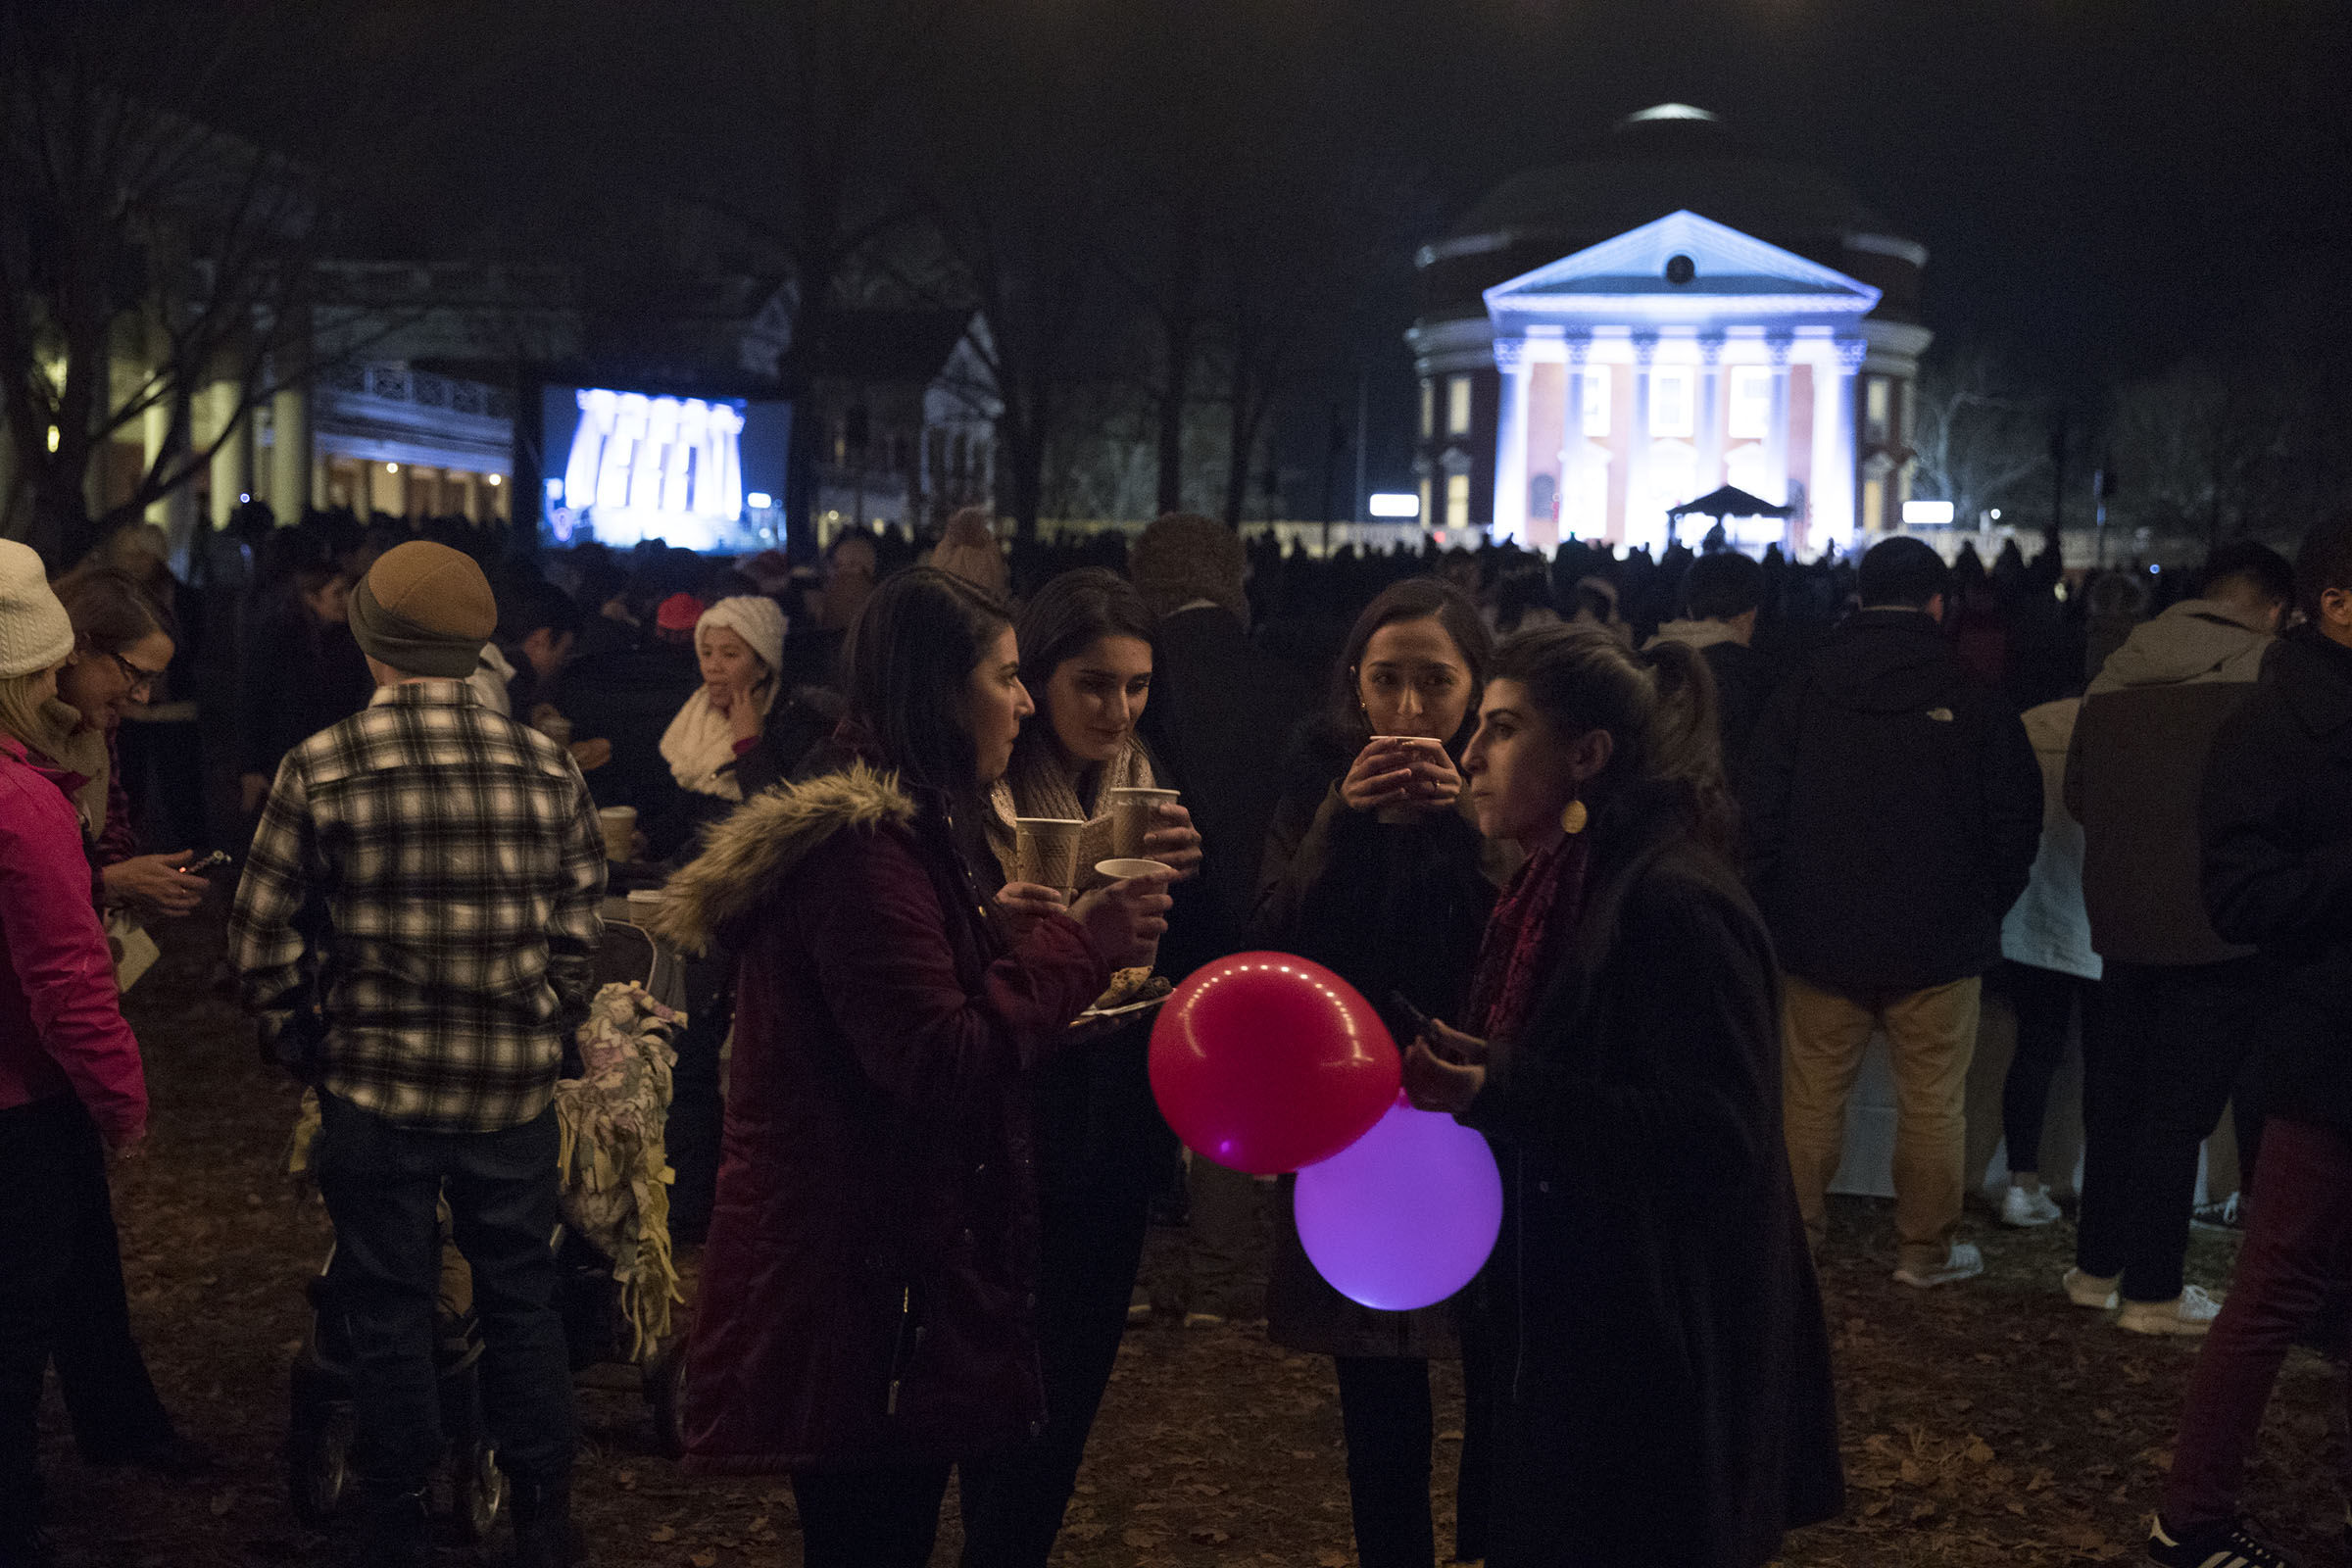 Revelers were invited for free cookies, hot chocolate and apple cider.